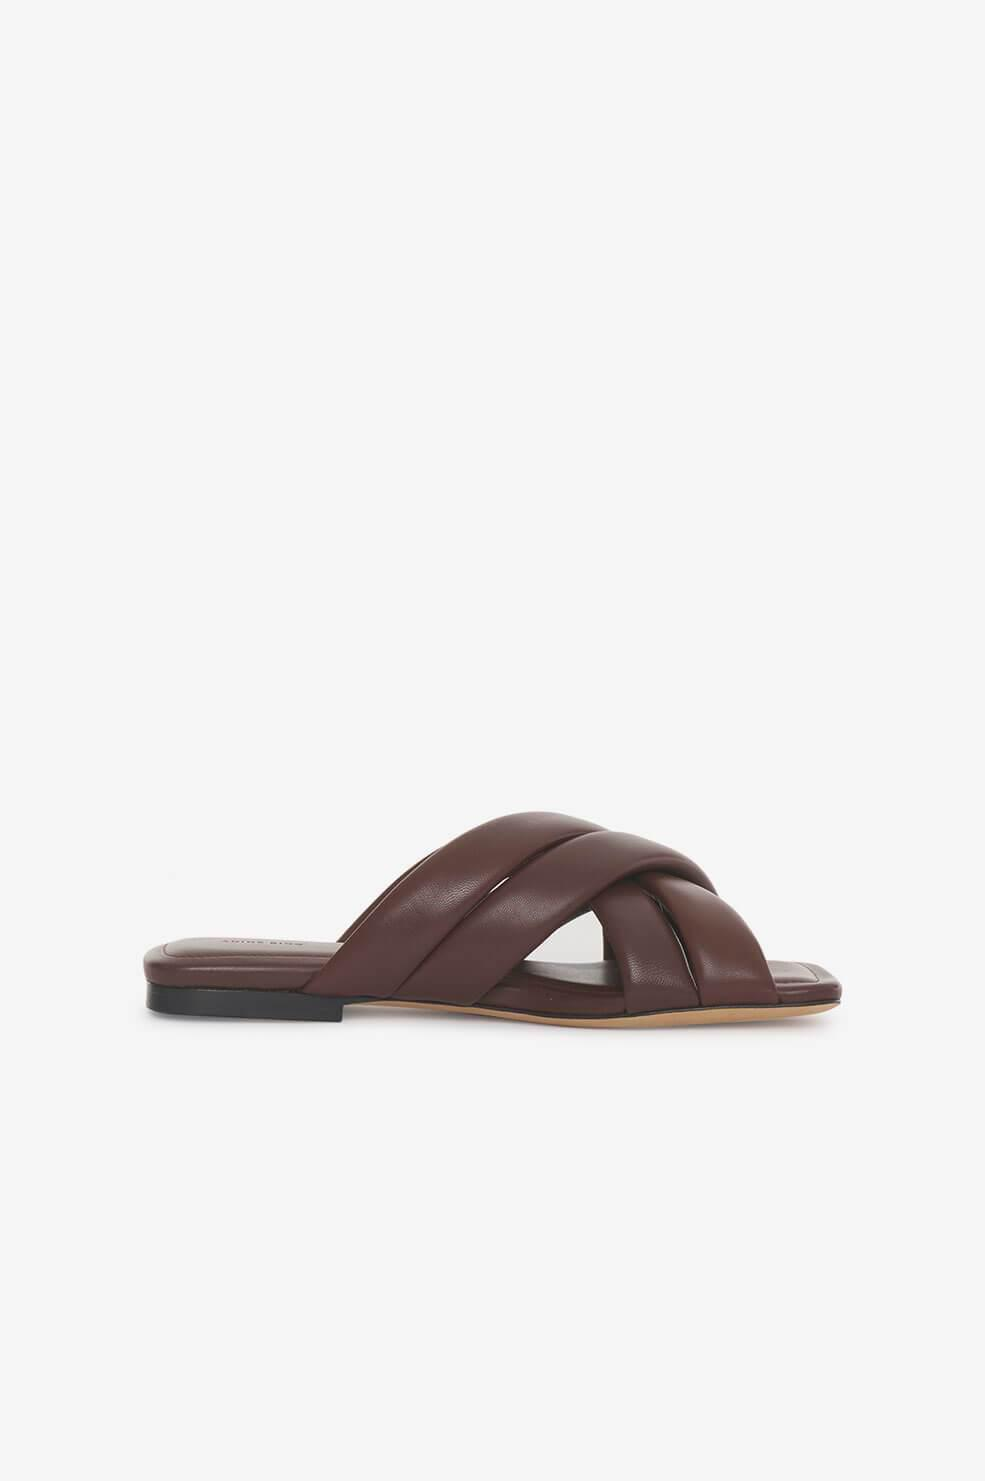 Eve Sandals - Chocolate Brown